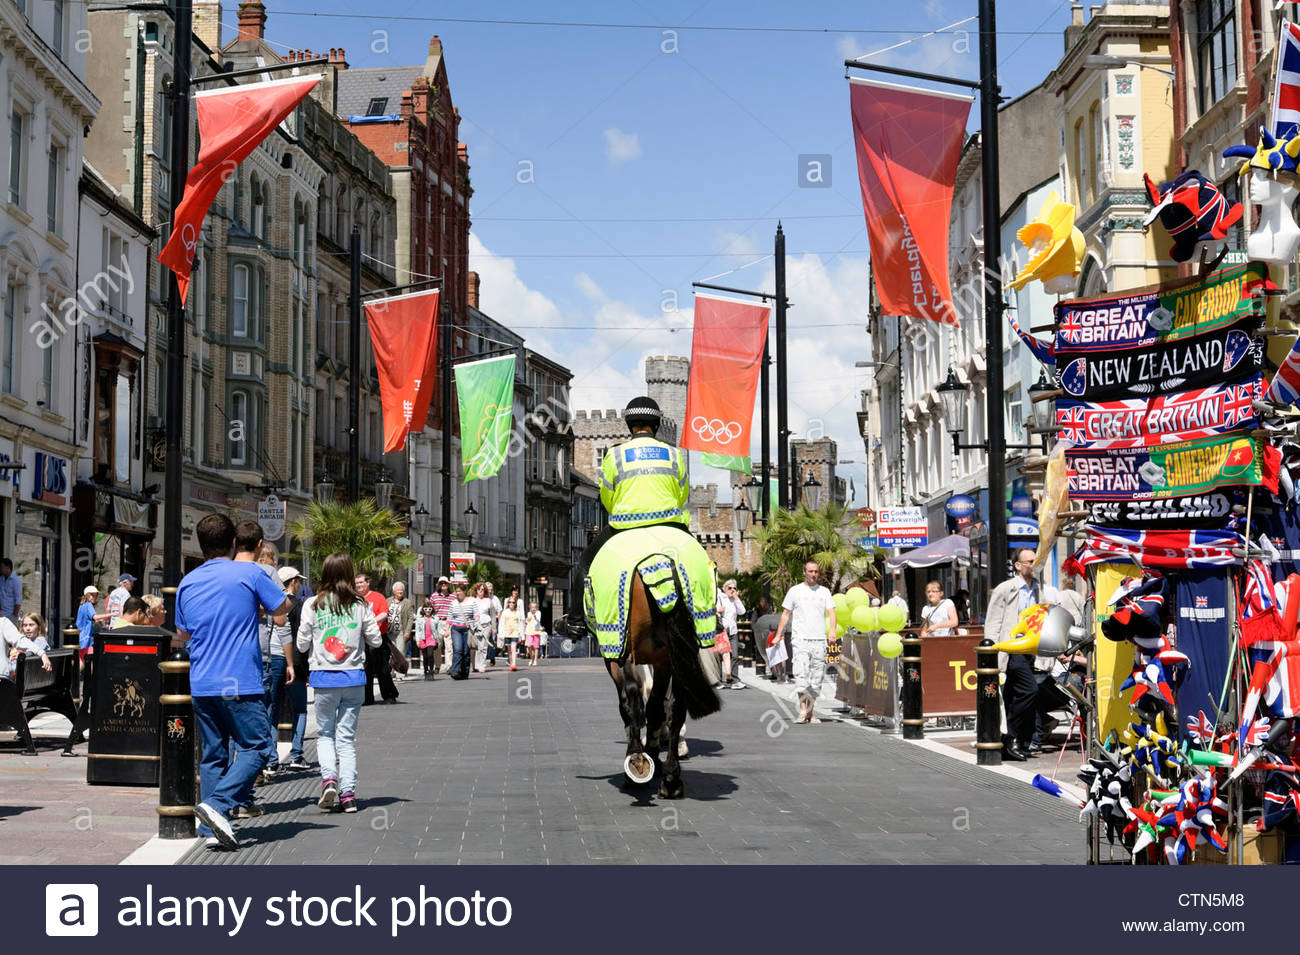 Police horse in Cardiff City Centre, South Wales, UK. - Stock Image